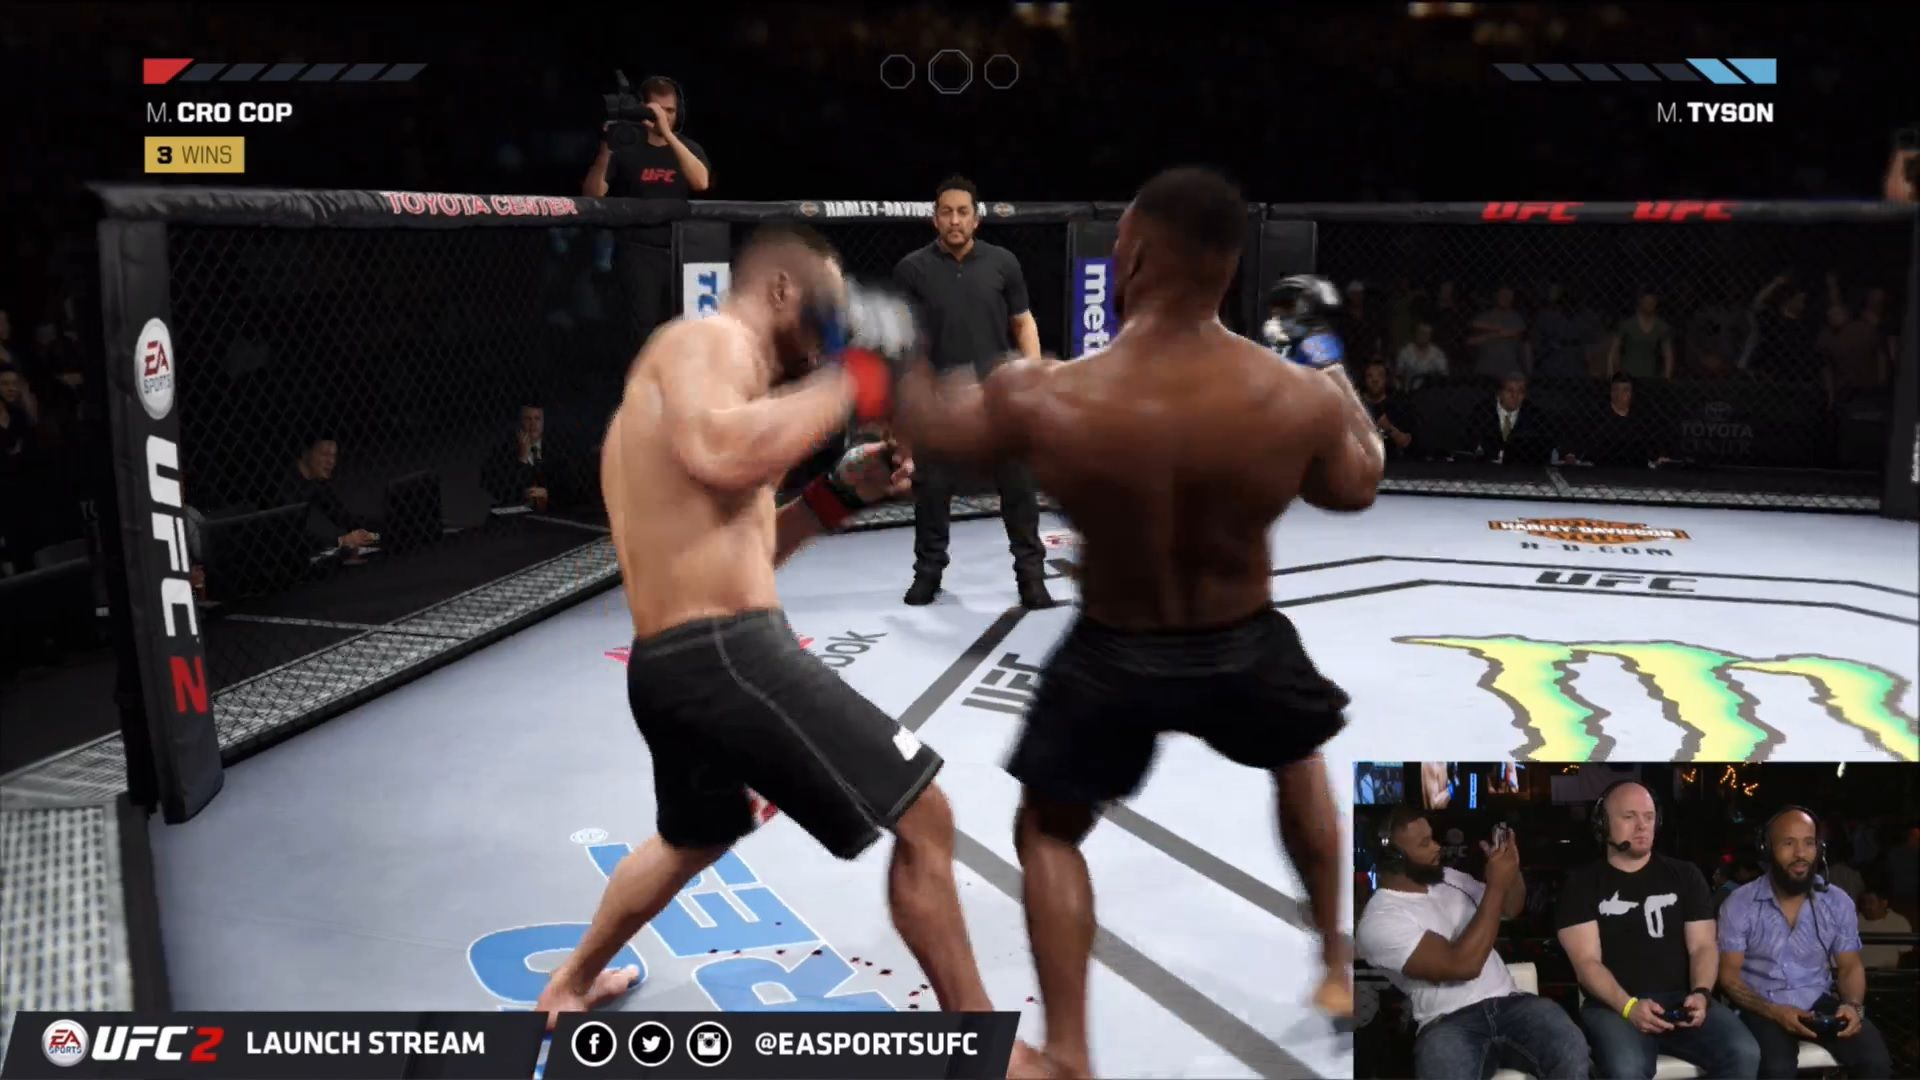 Ea Sports Ufc 2 Launch Party Stream Offers An Hour And Half Of Gameplay Sports Gamers Online Ea Sports Ufc Ea Sports Ufc 2